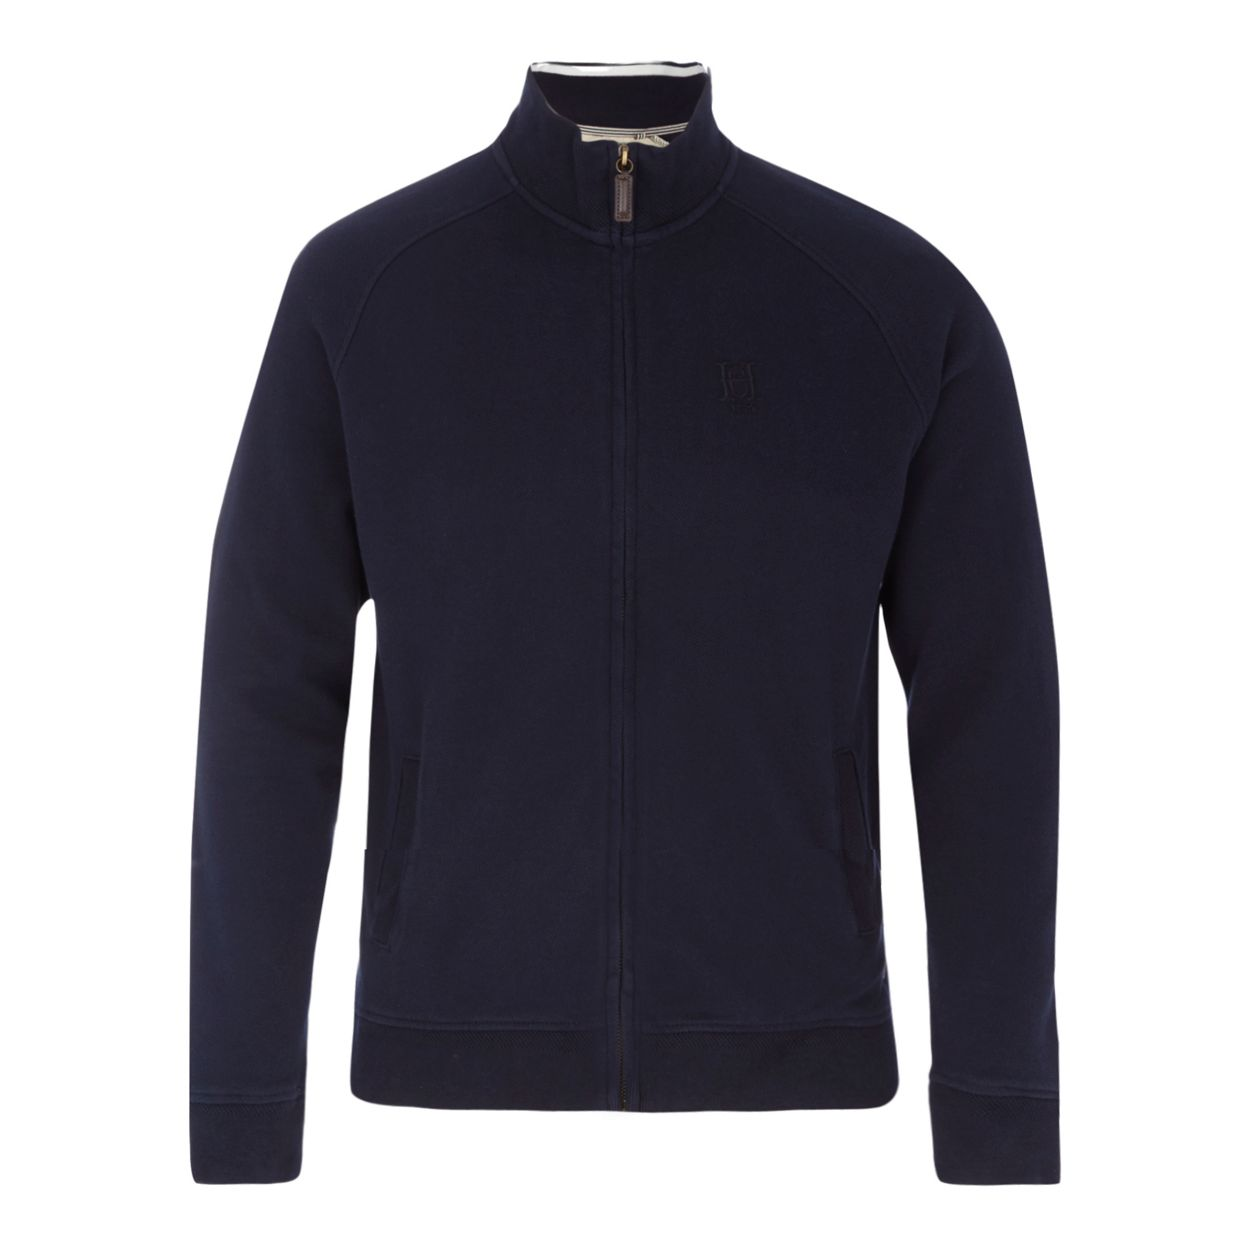 Hammond & Co. by Patrick Grant Navy pique sweater